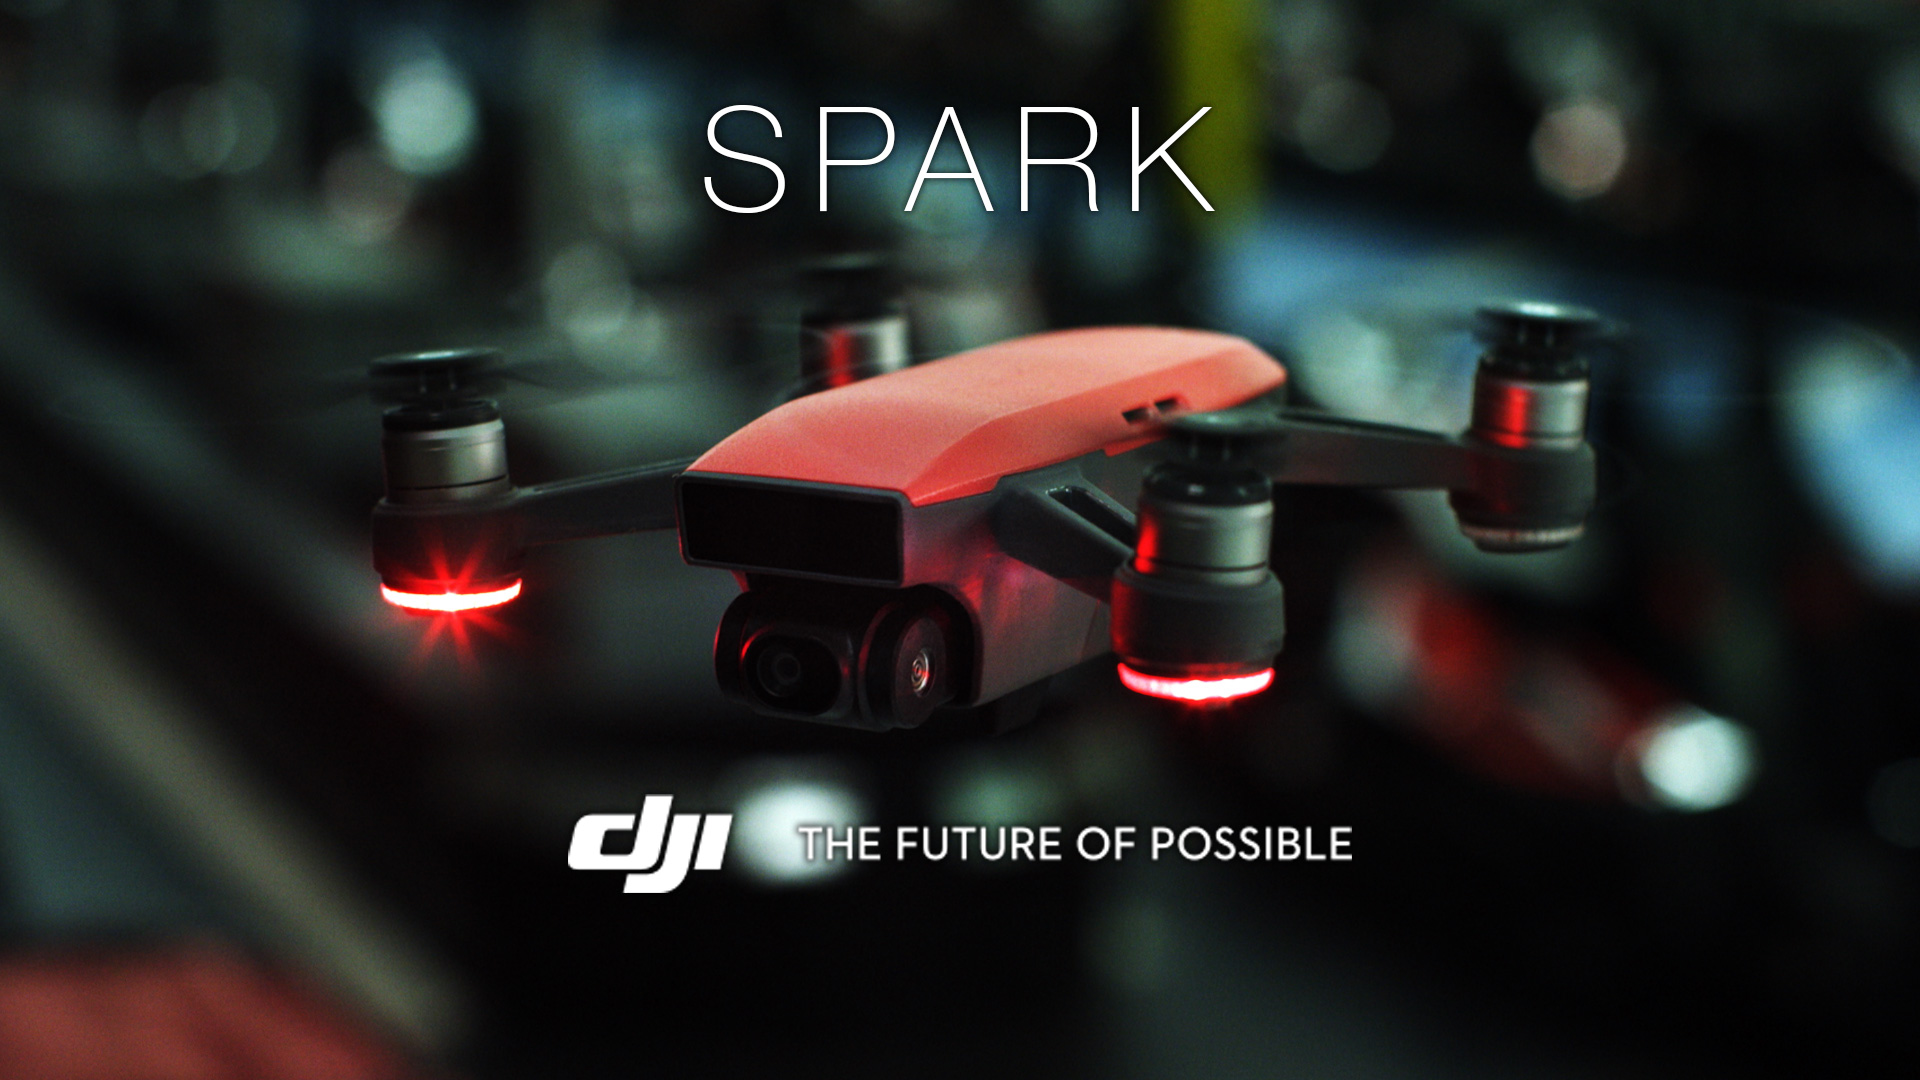 drones camera with Spark Dji Drone Fpv on Helicoptere further Hexo Gopro Test Winter 7818 in addition Watch further Gopro Hero 6 Price Release Date additionally Propel Rc Video Drone Rechargeable Battery Kit.